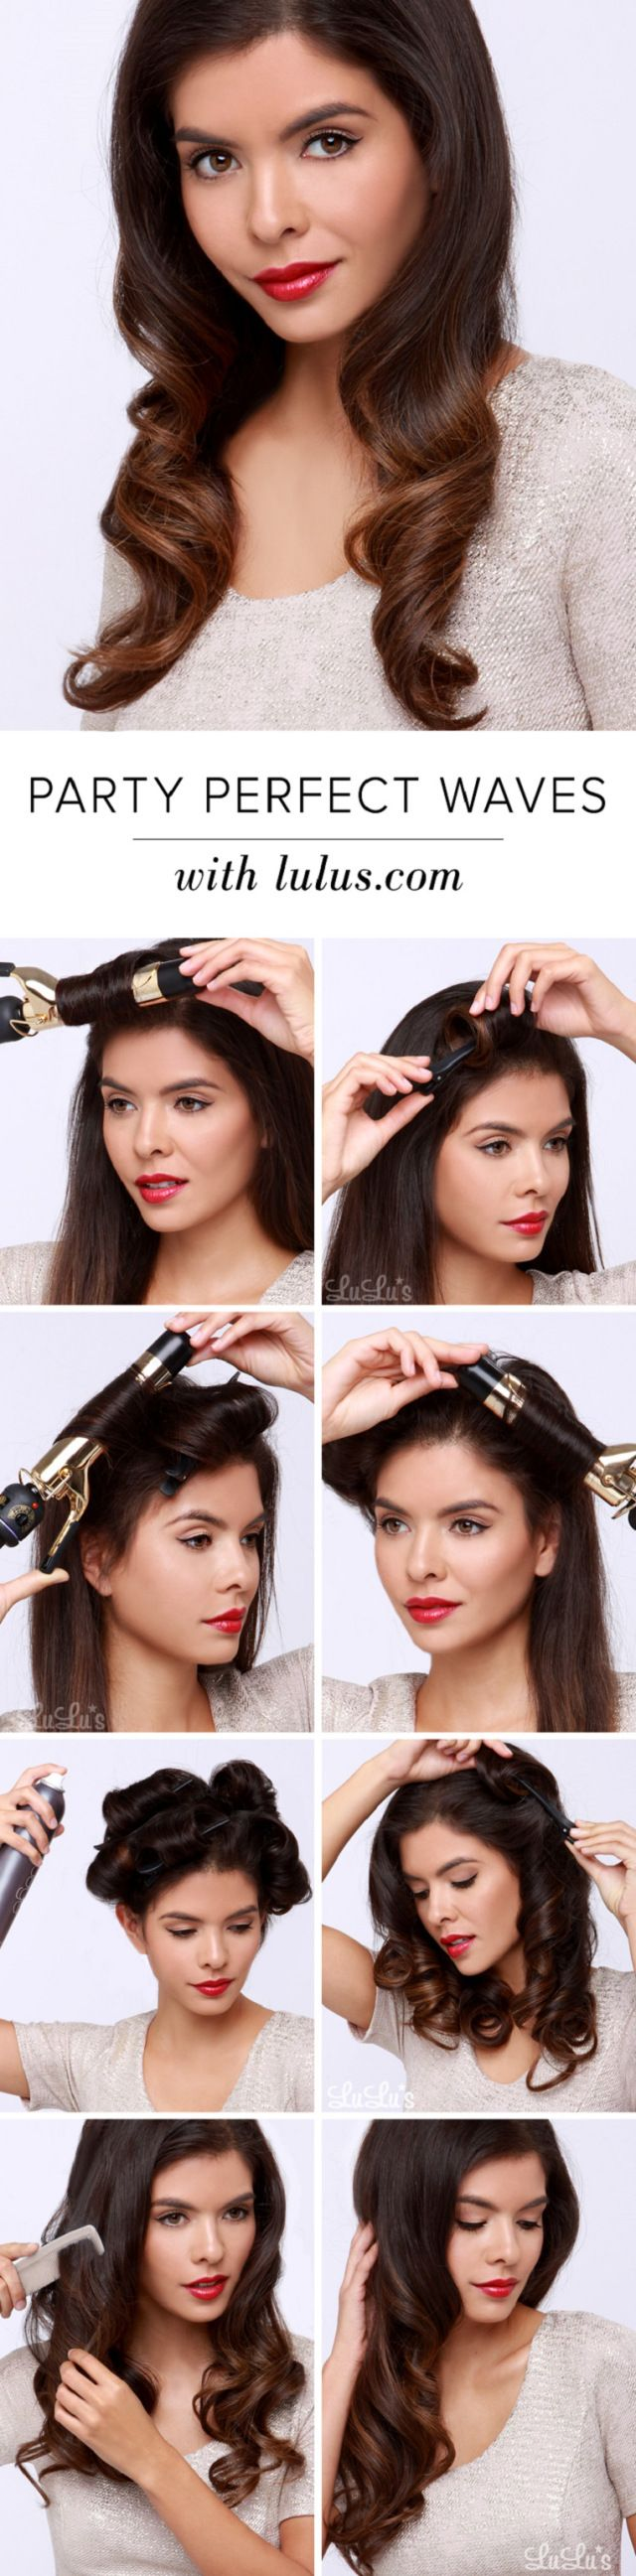 Party Perfect Waves Tutorial | 12 Party Perfect Beauty Tutorials That'll Make You Sparkle http://www.jexshop.com/